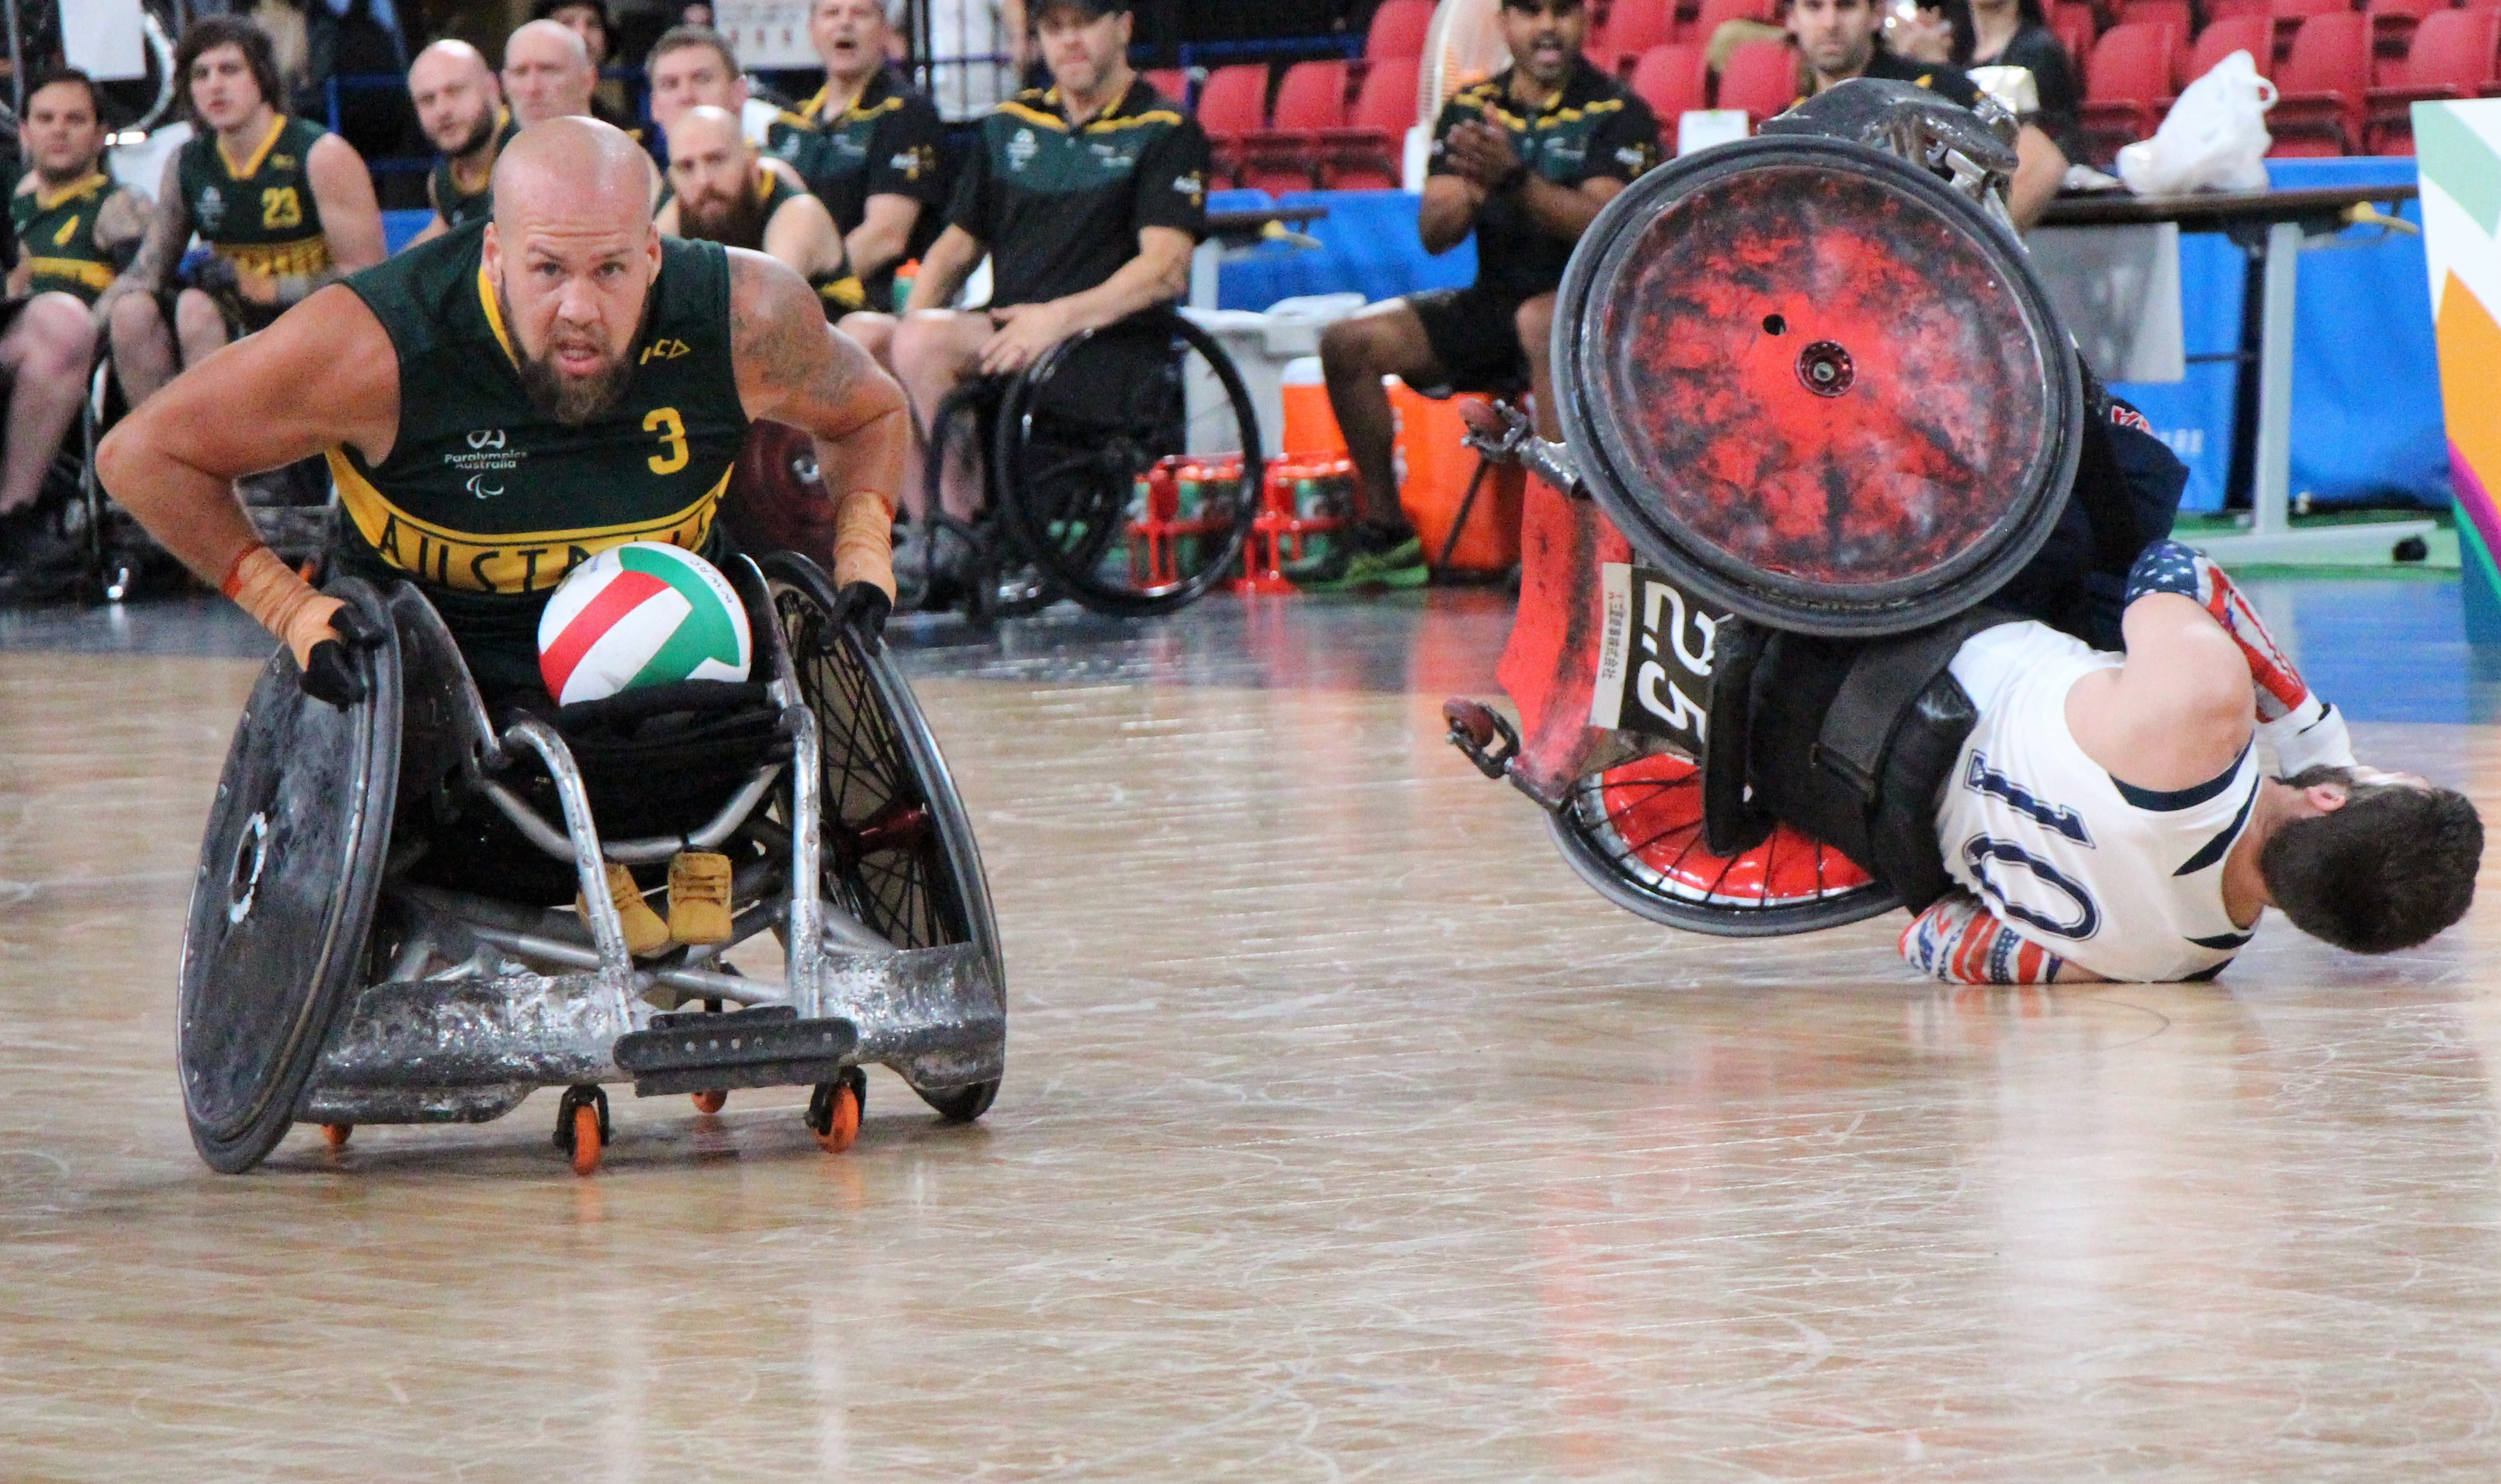 Steelers to face Japan in sold-out WWRC semi final